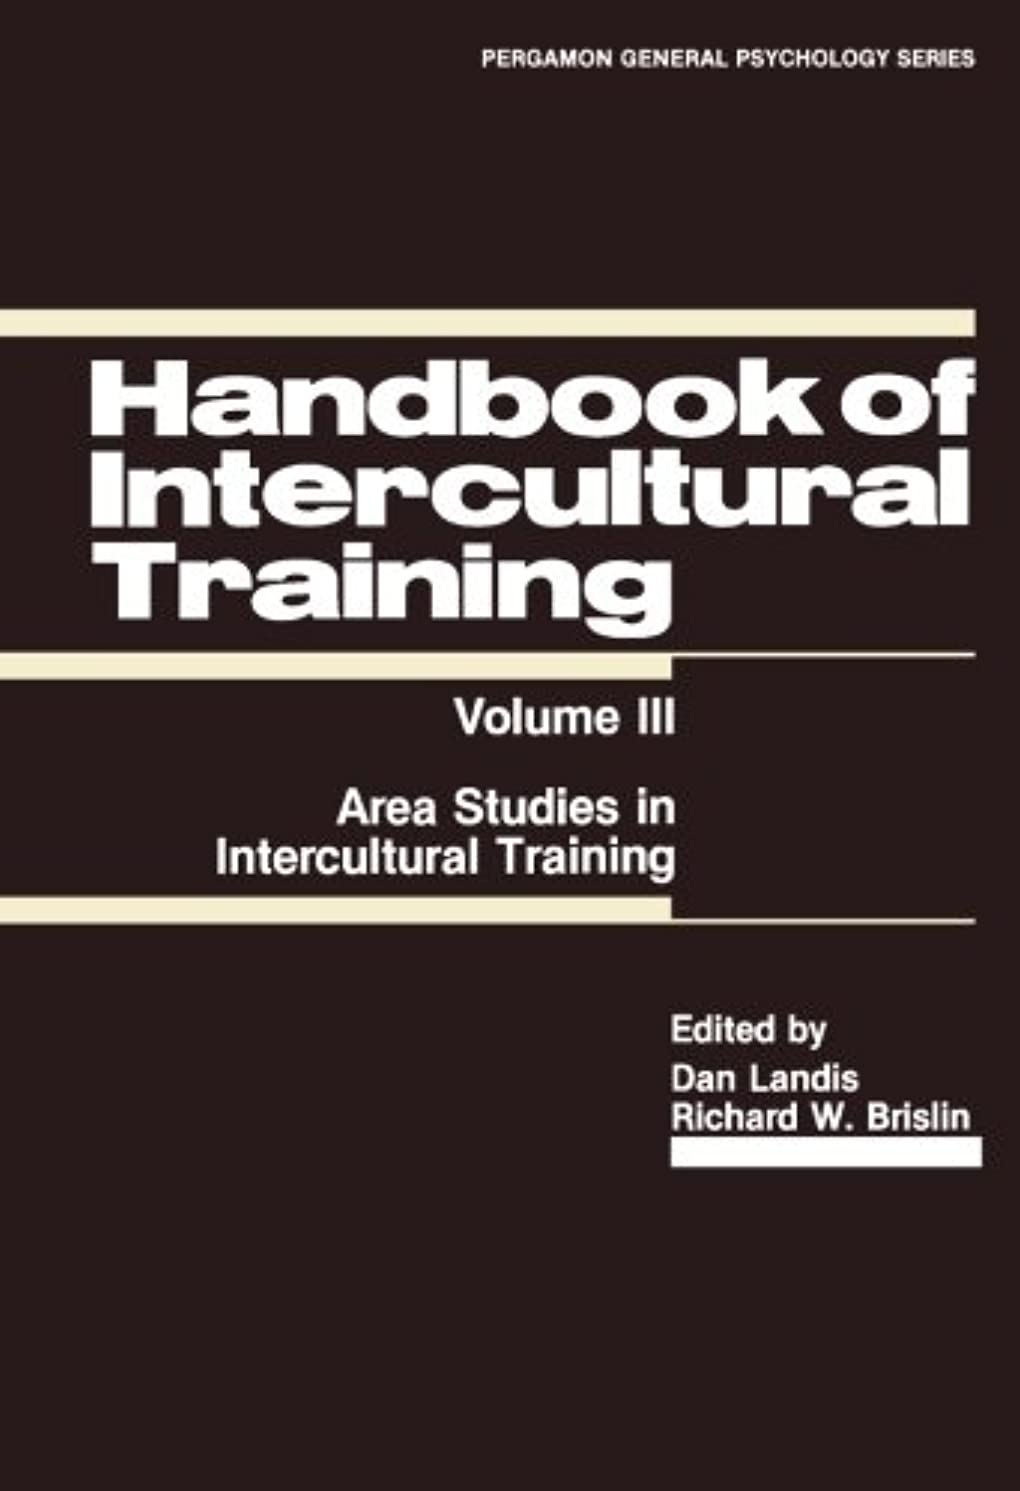 広まった引き出し挽くHandbook of Intercultural Training: Area Studies in Intercultural Training